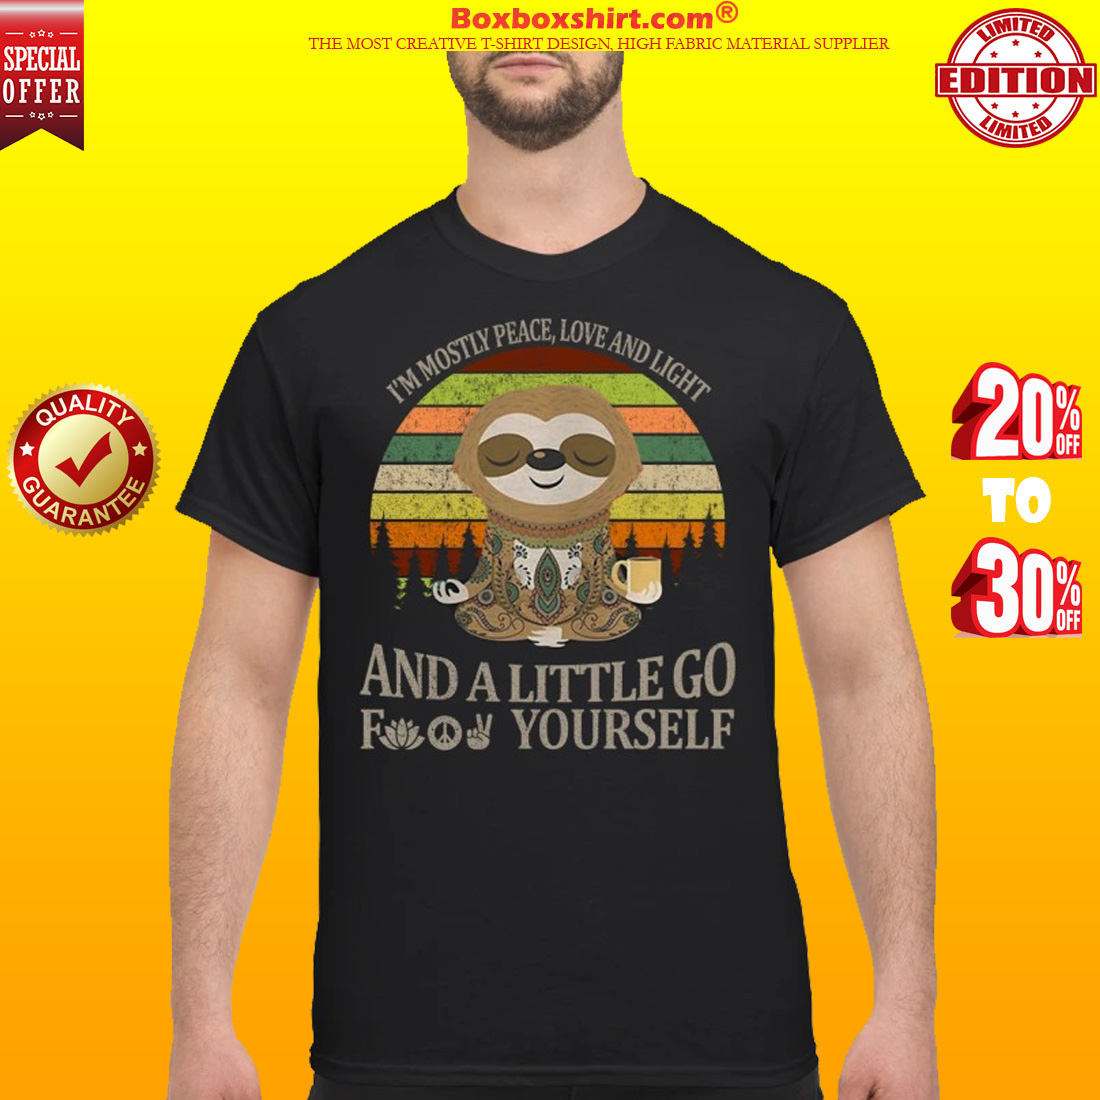 Sloth I'm mostly peace love and light and a little go fuck yourself classic shirt